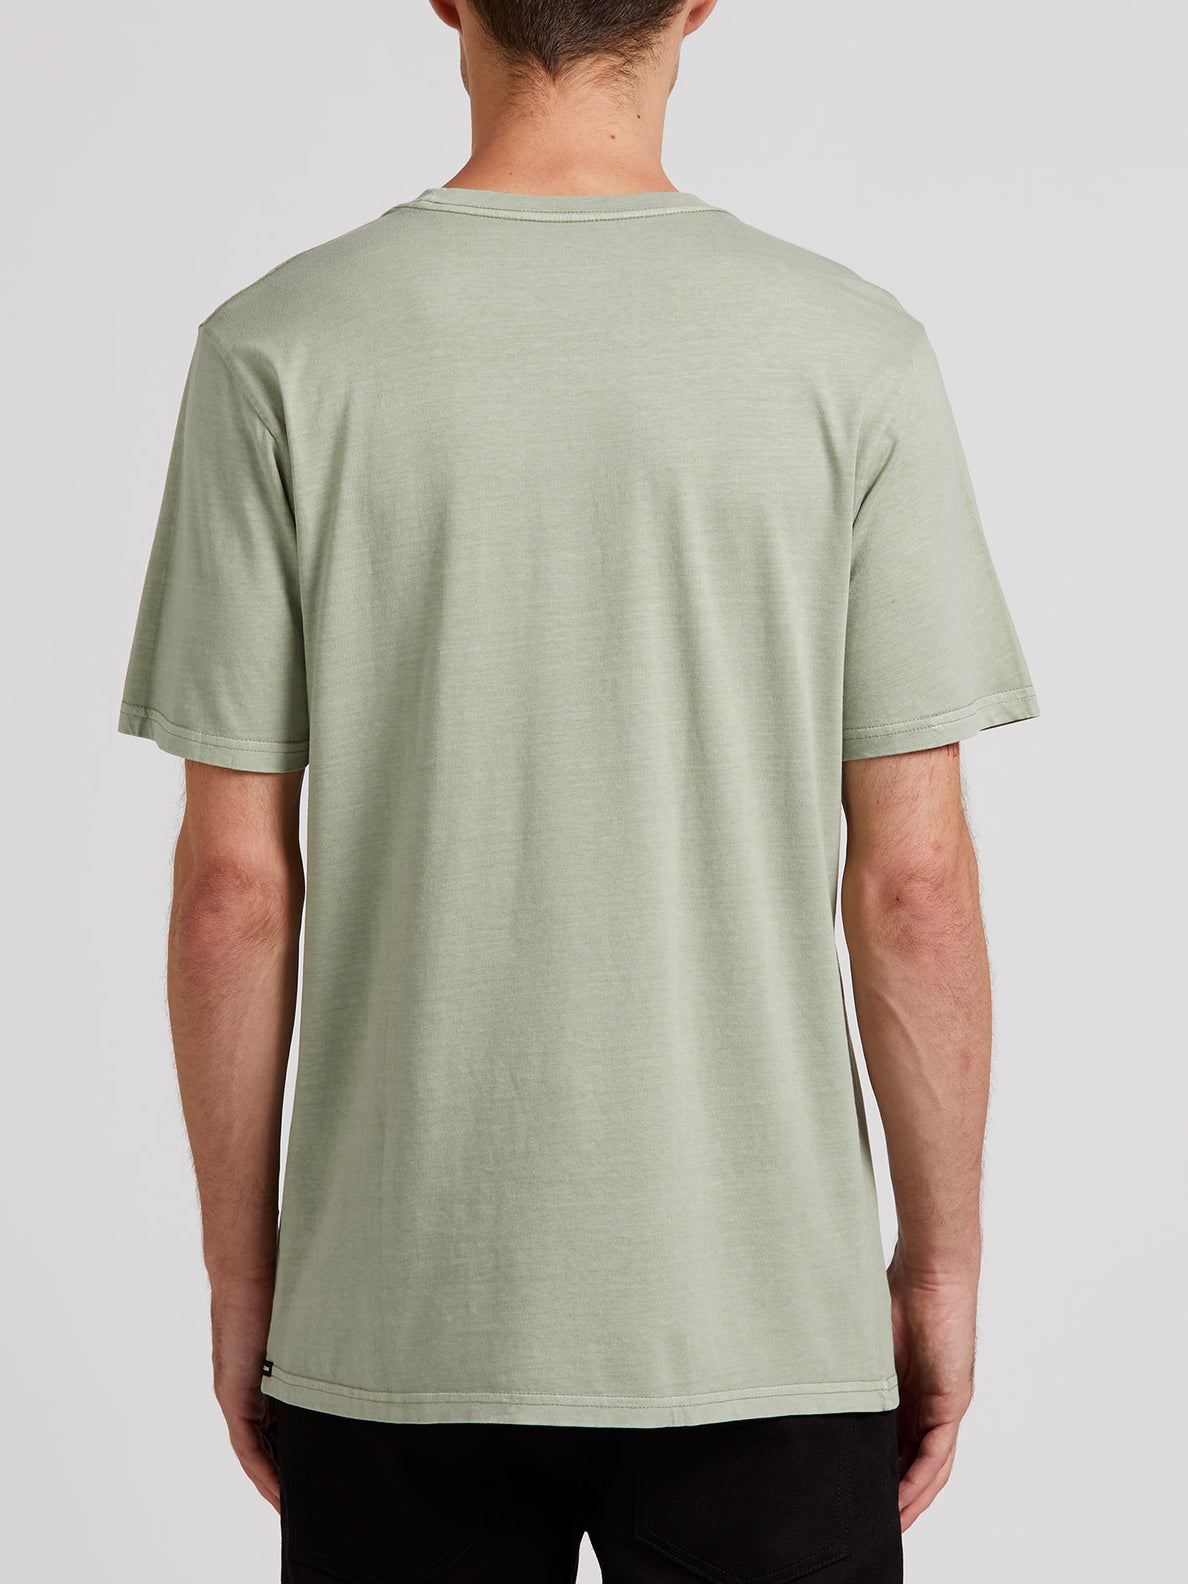 Tallish Short Sleeve Tee - Seagrass Green (A5222000_SGR) [B]